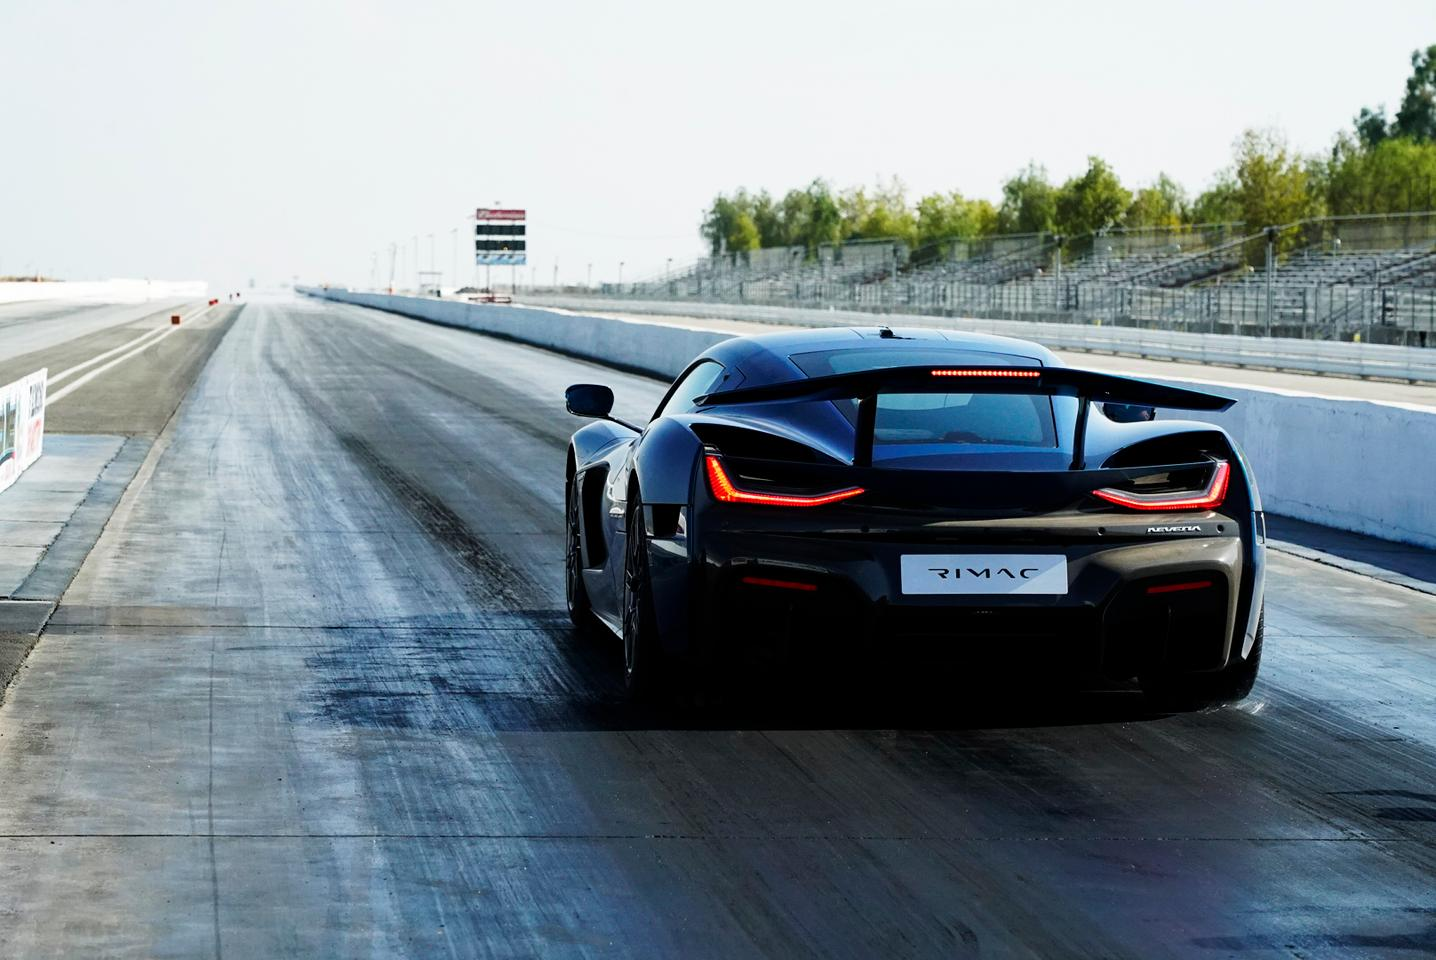 The Rimac Nevera is now the world's fastest production car down the quarter mile